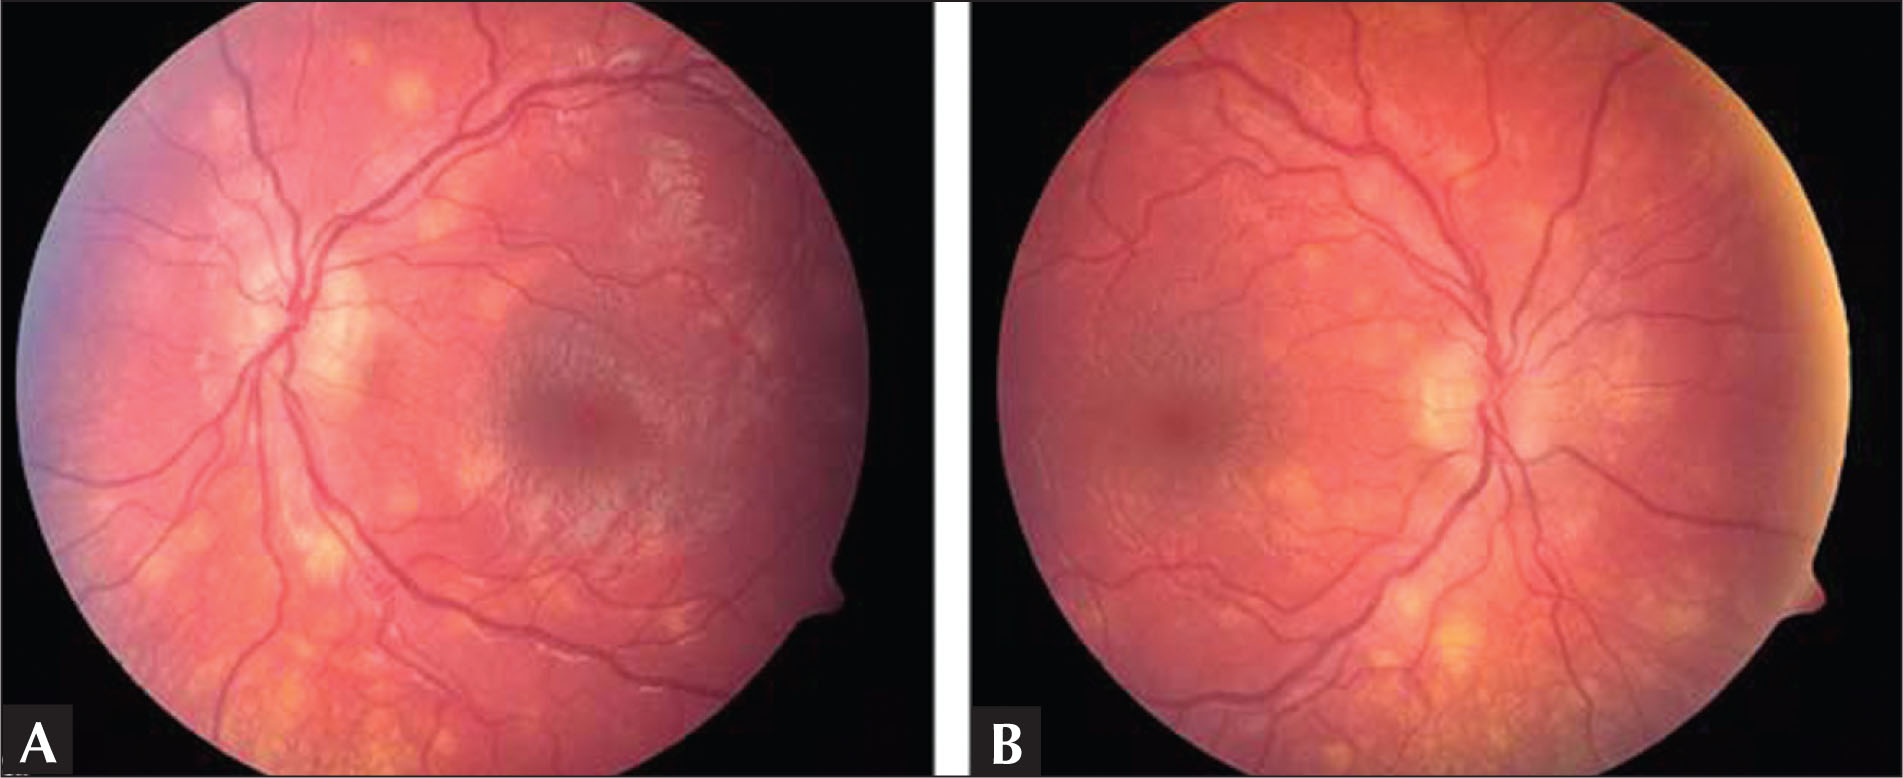 Color Fundus Photographs of the (A) Left Eye and (B) Right Eye Demonstrating Chorioretinal Lesions.